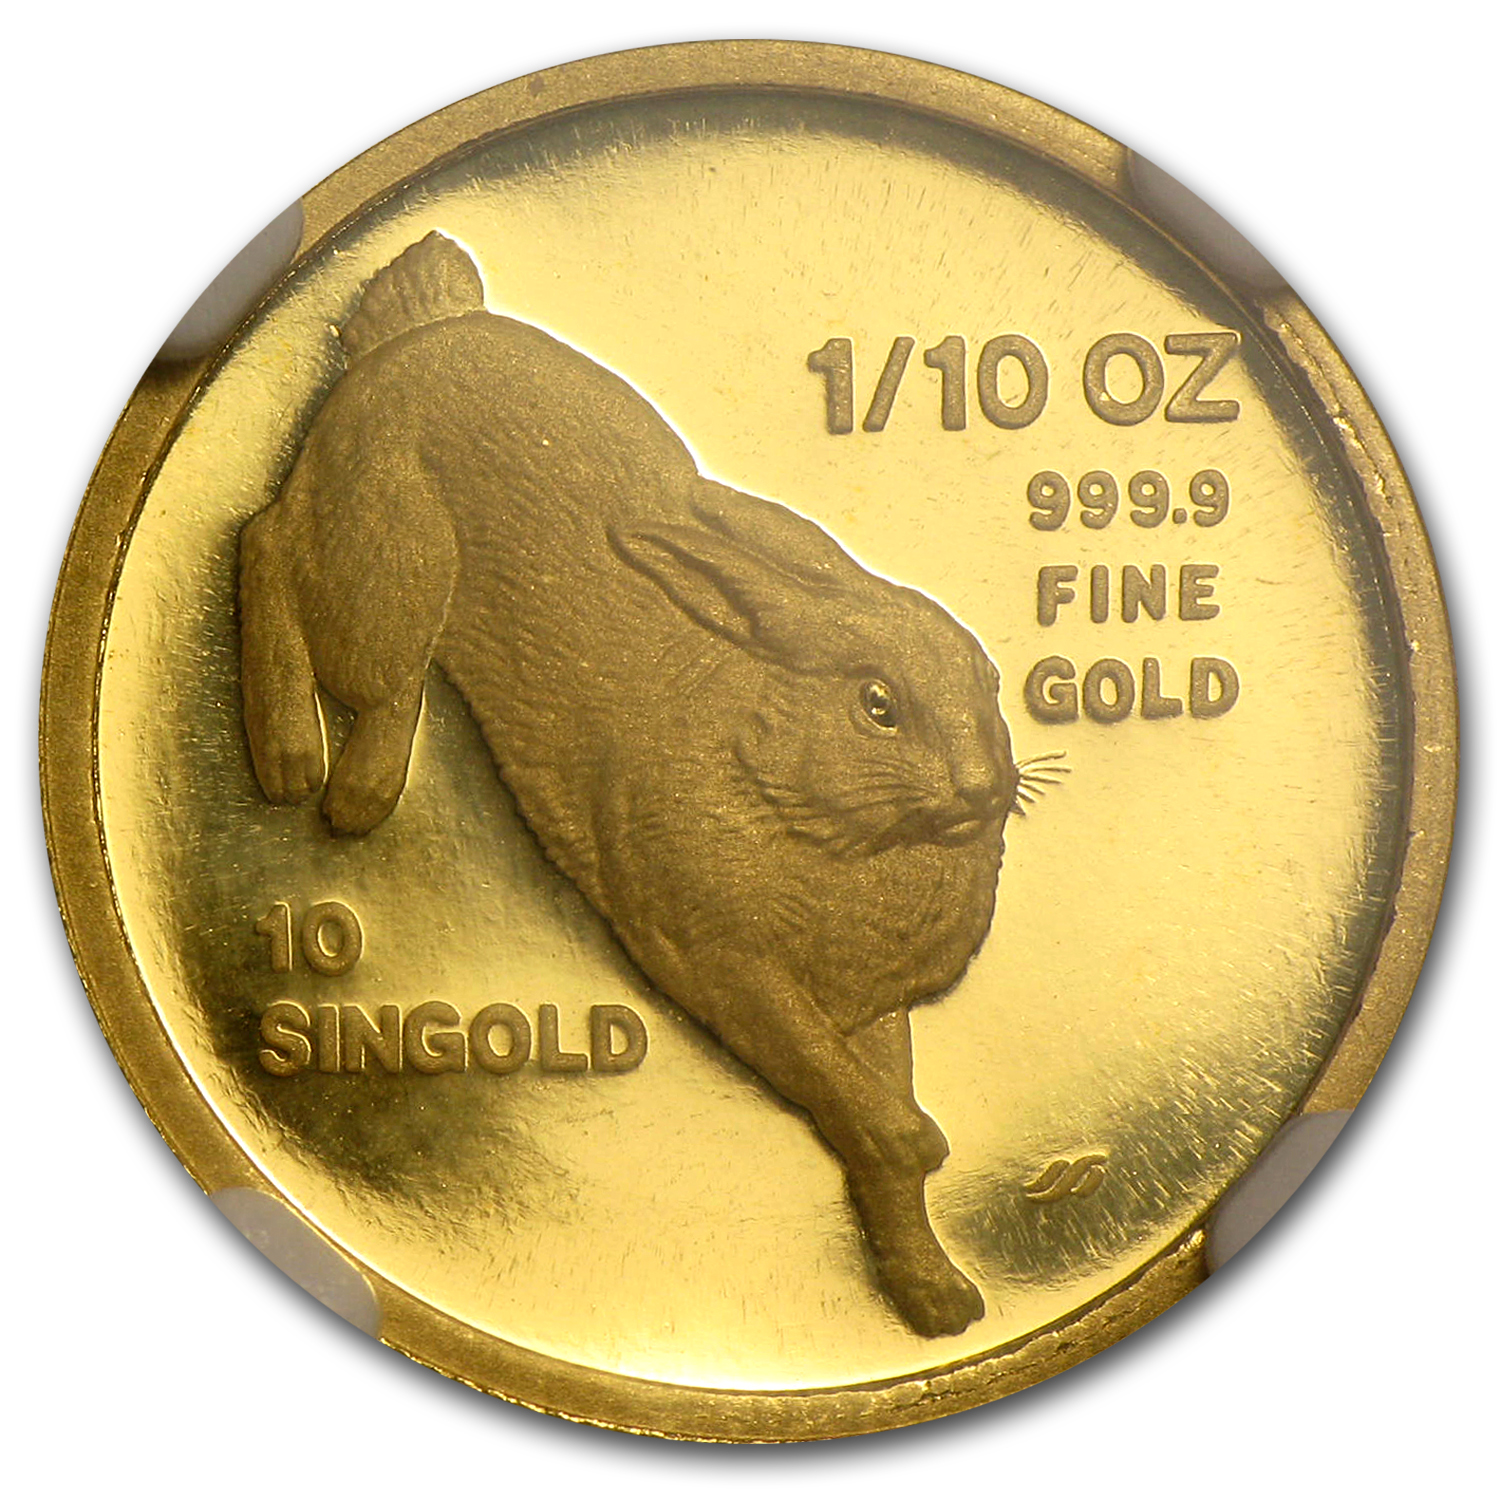 1987 Singapore 1/10 oz Proof Gold 10 Singold Rabbit PF-69 NGC